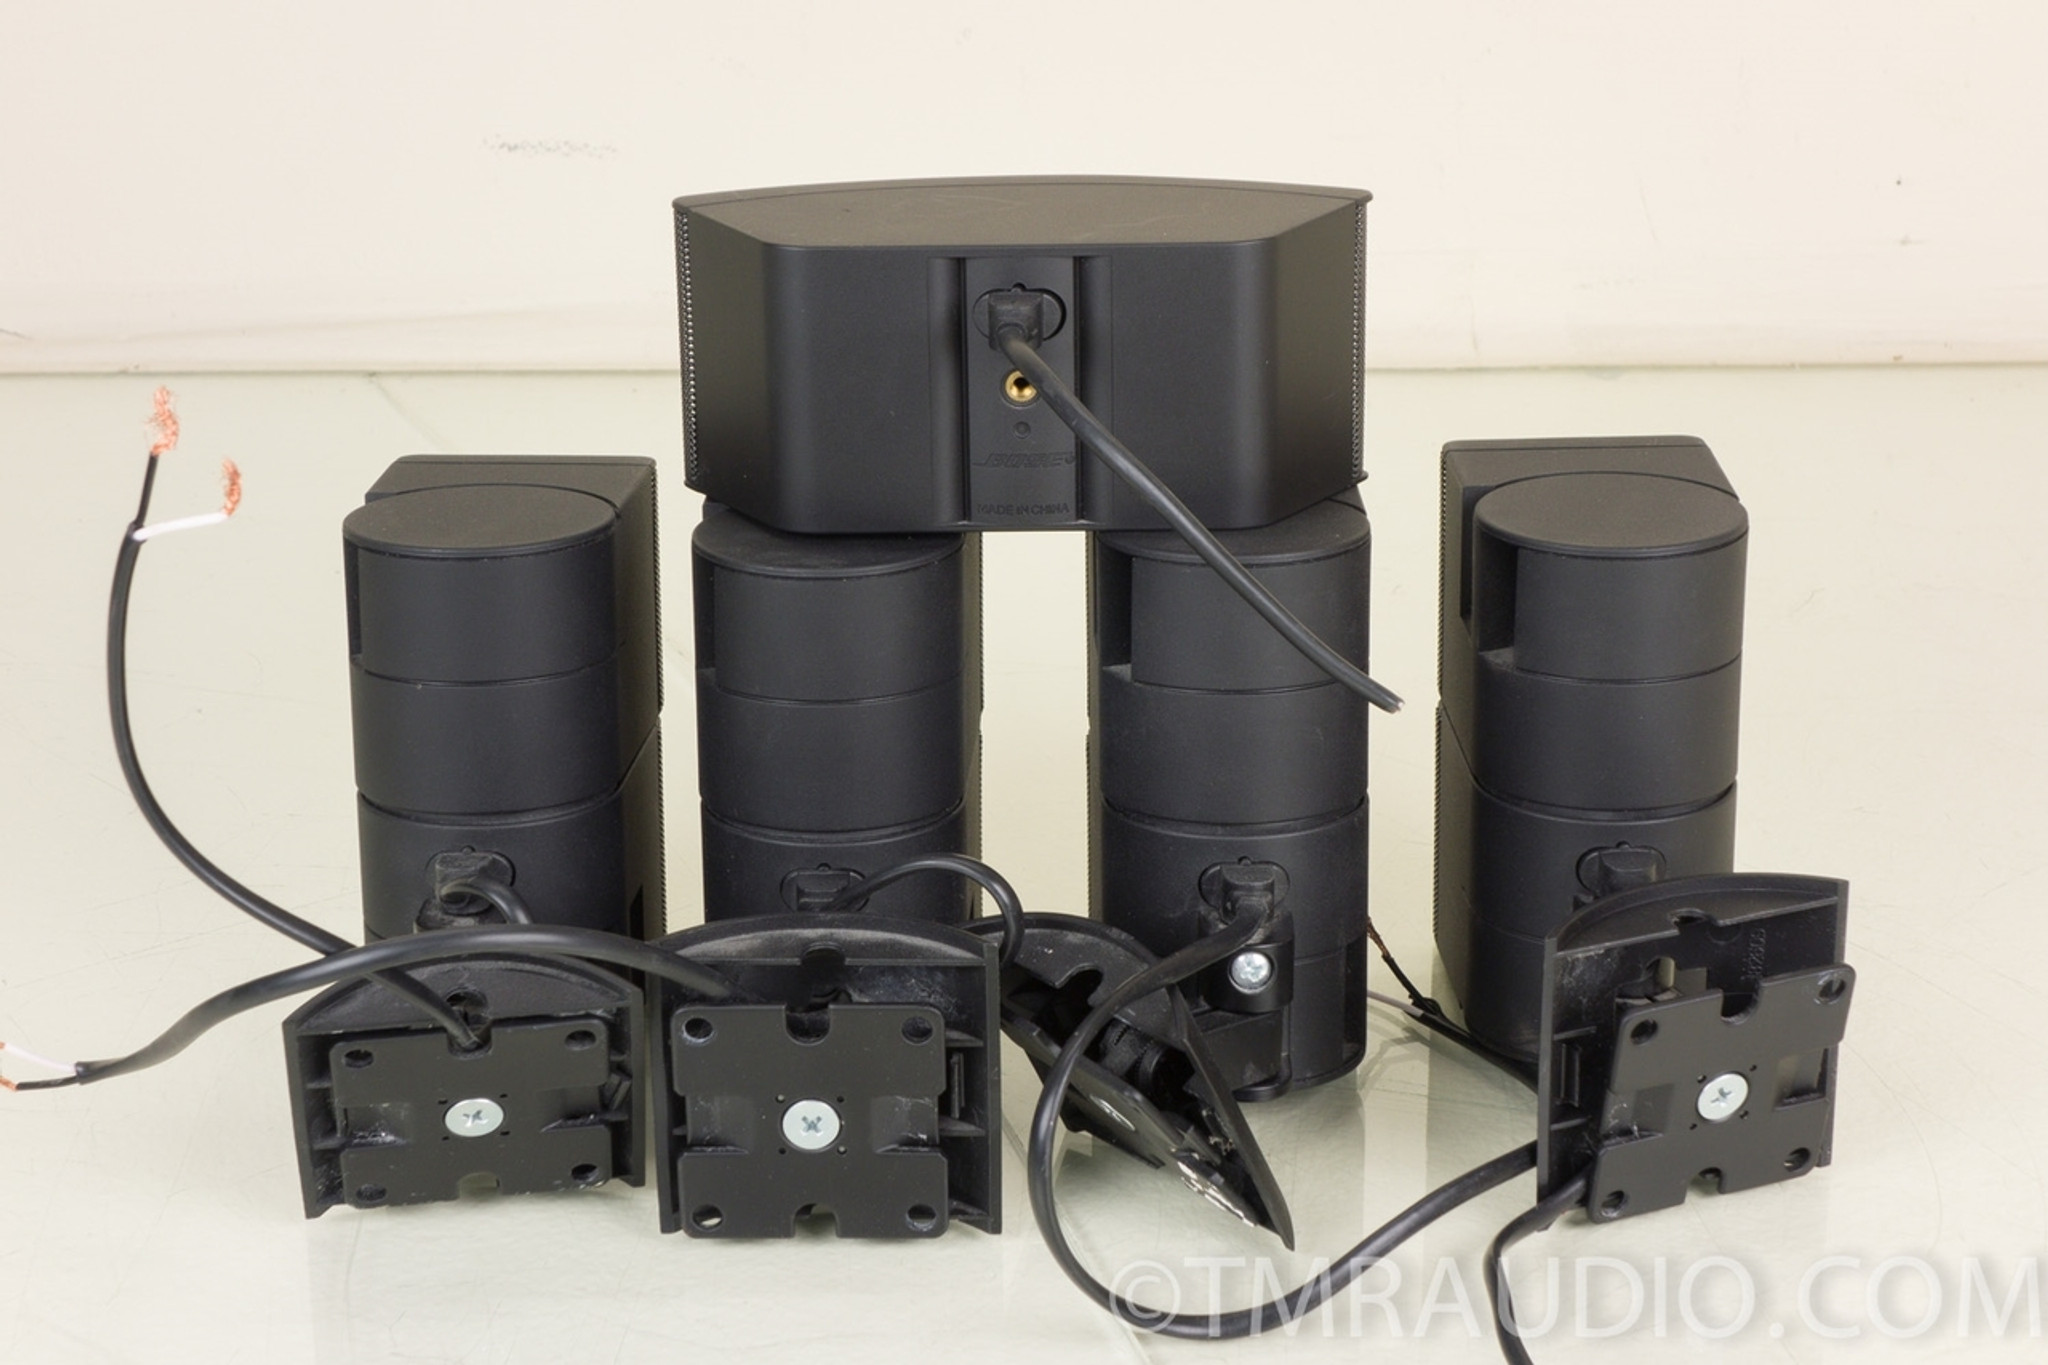 bose jewel cube speakers set of 5 w ub 20 brackets the music room. Black Bedroom Furniture Sets. Home Design Ideas